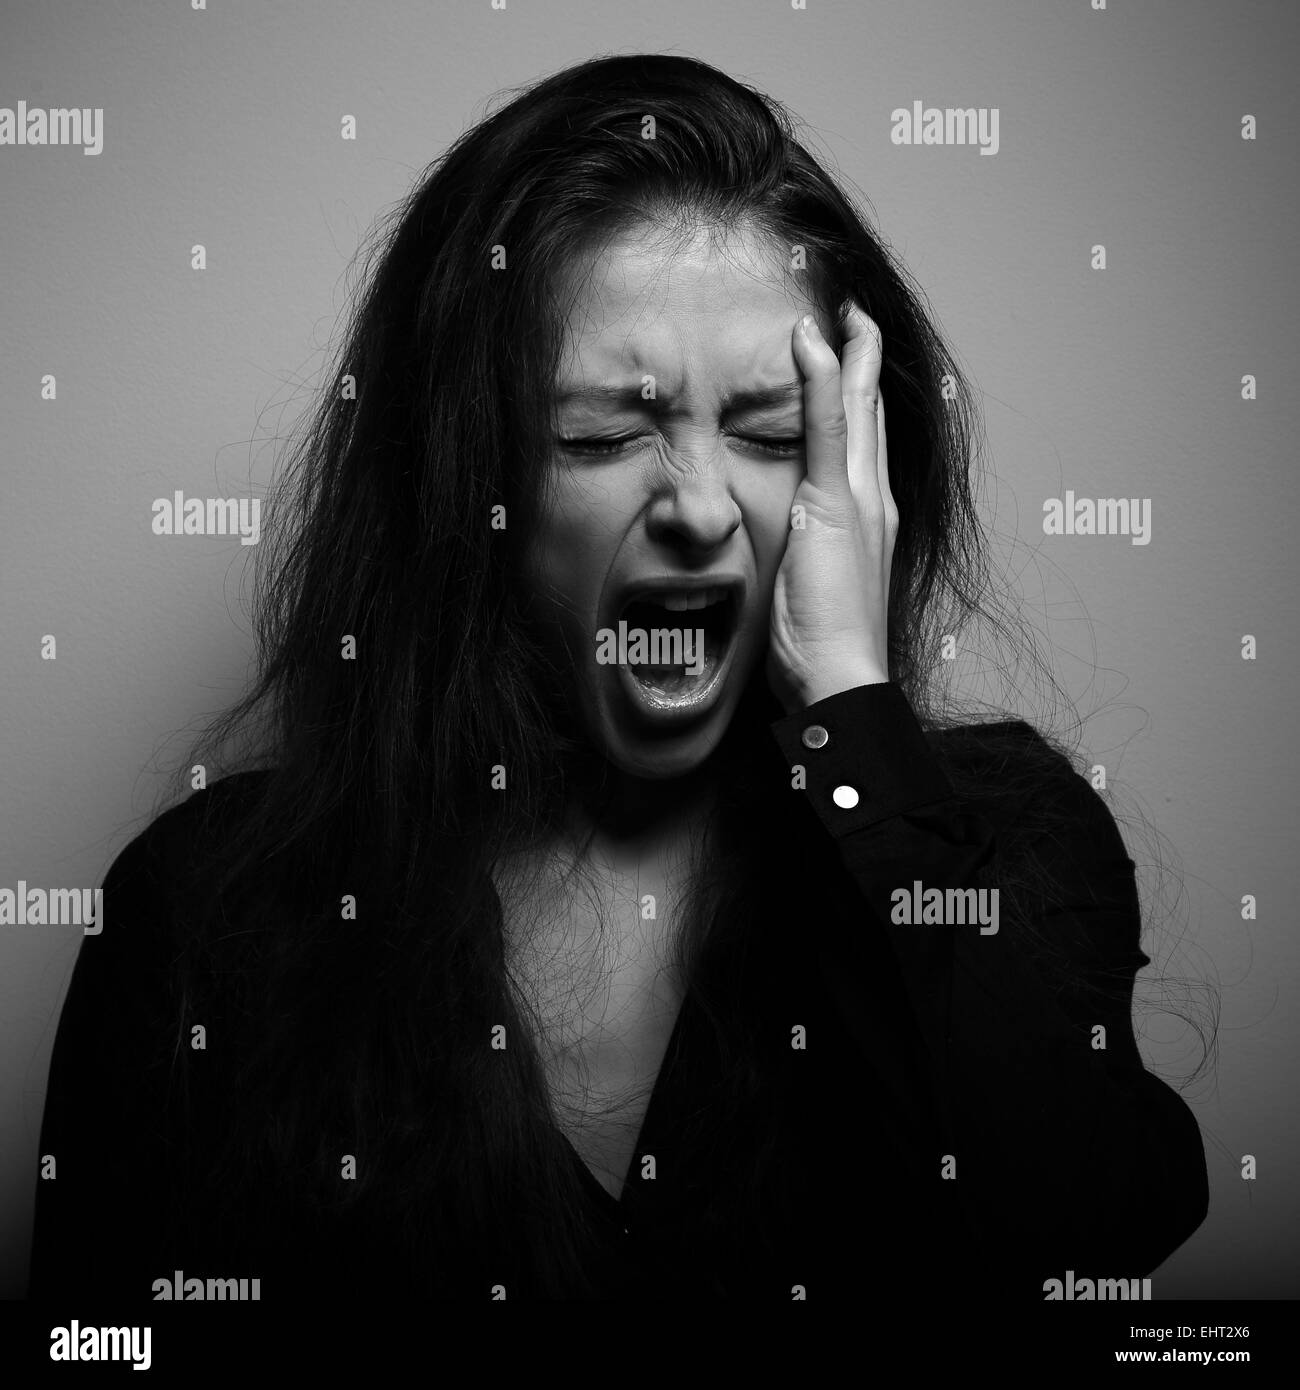 Shouting woman with unhappy, depressed crying face in big grief. Black and white portrait - Stock Image